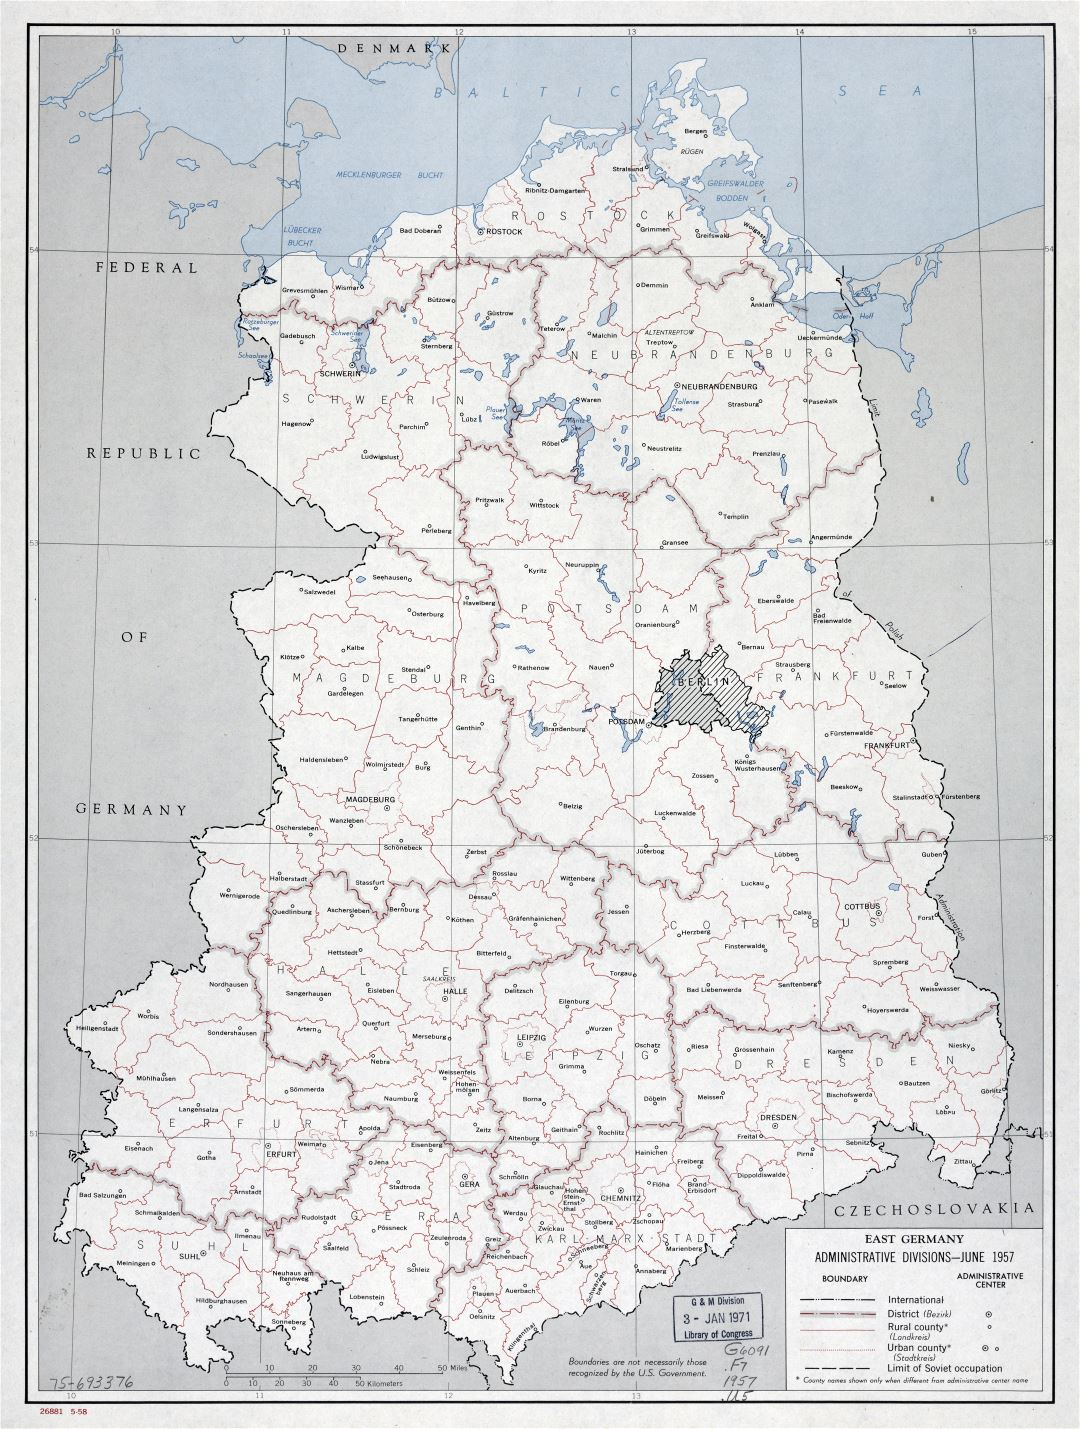 Large scale East Germany administrative divisions map - 1958